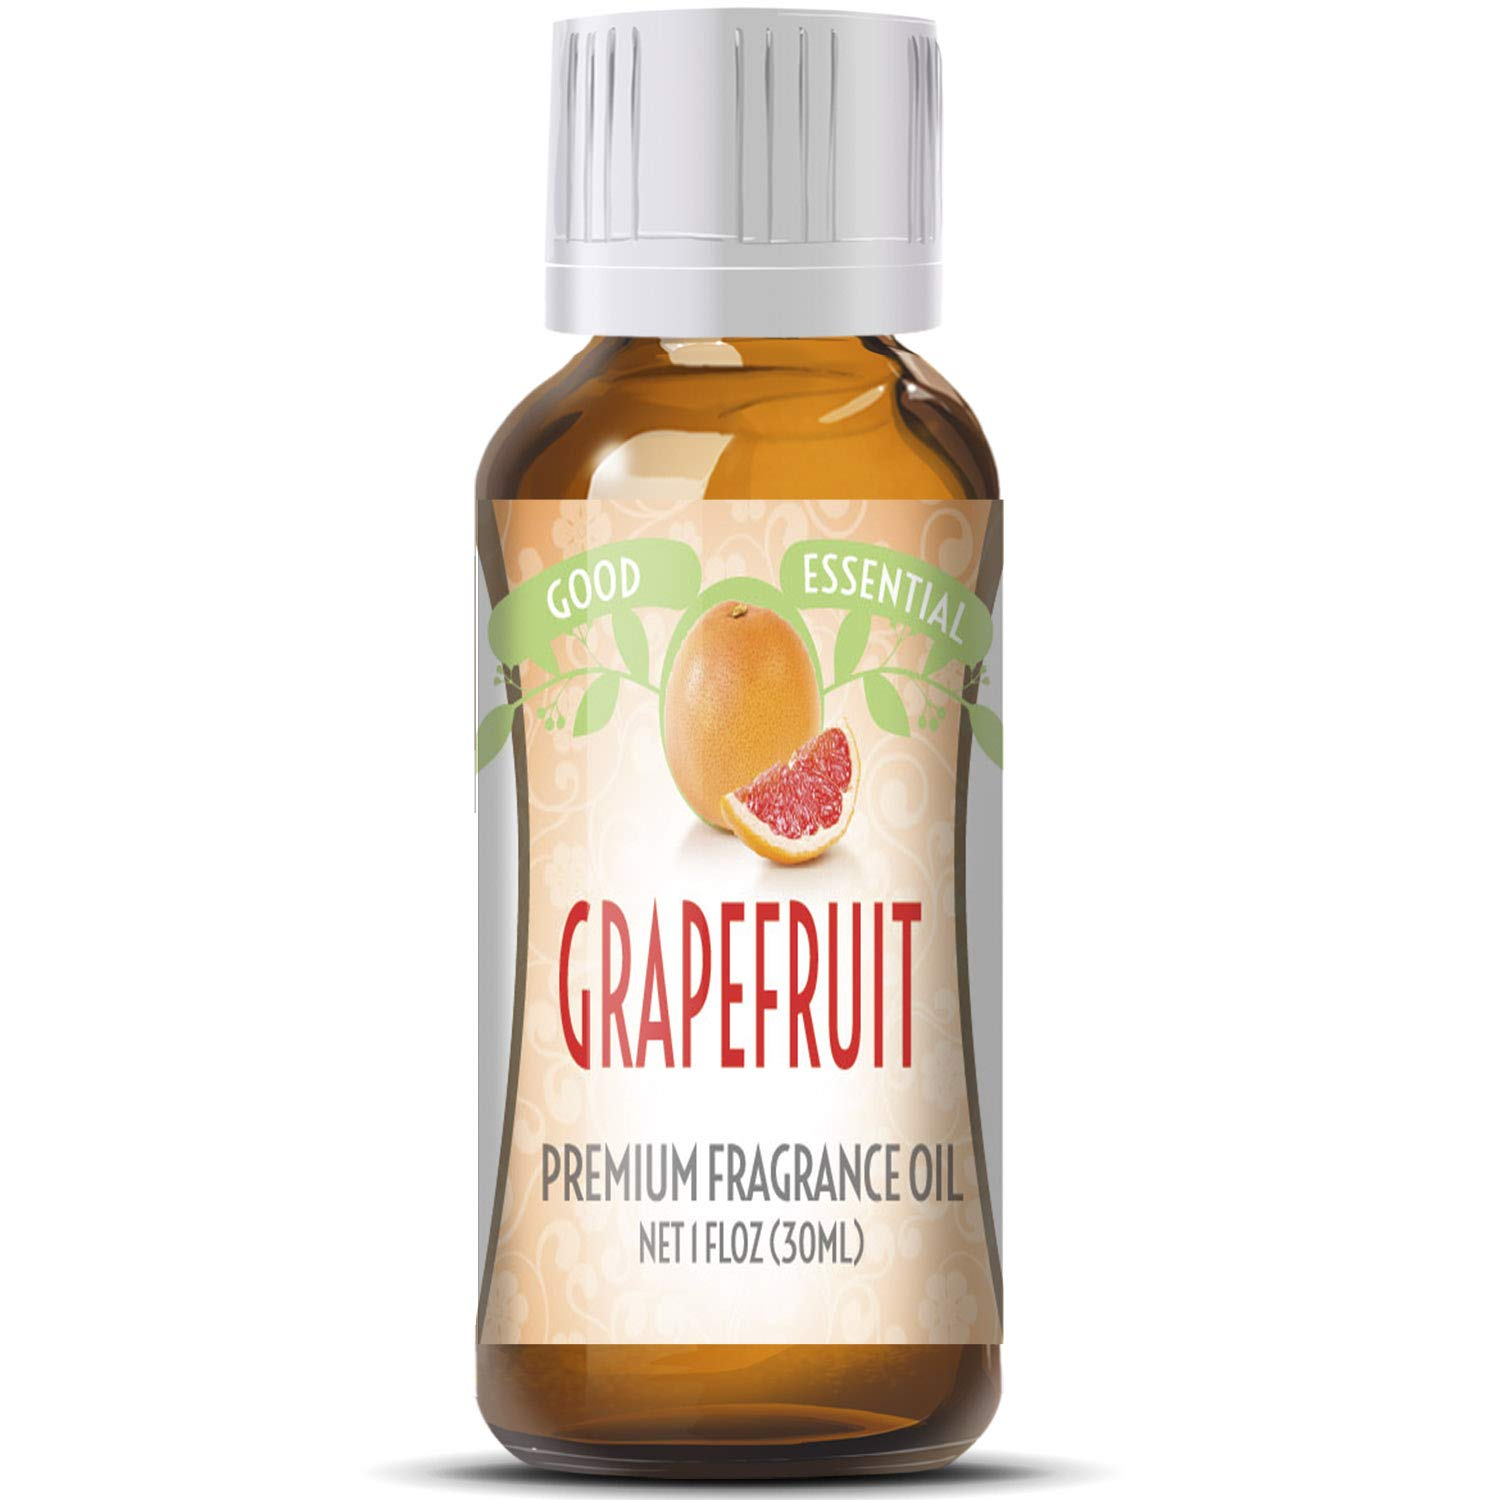 Grapefruit Scented Oil by Good Essential (Huge 1oz Bottle - Premium Grade Fragrance Oil) - Perfect for Aromatherapy, Soaps, Candles, Slime, Lotions, and More!